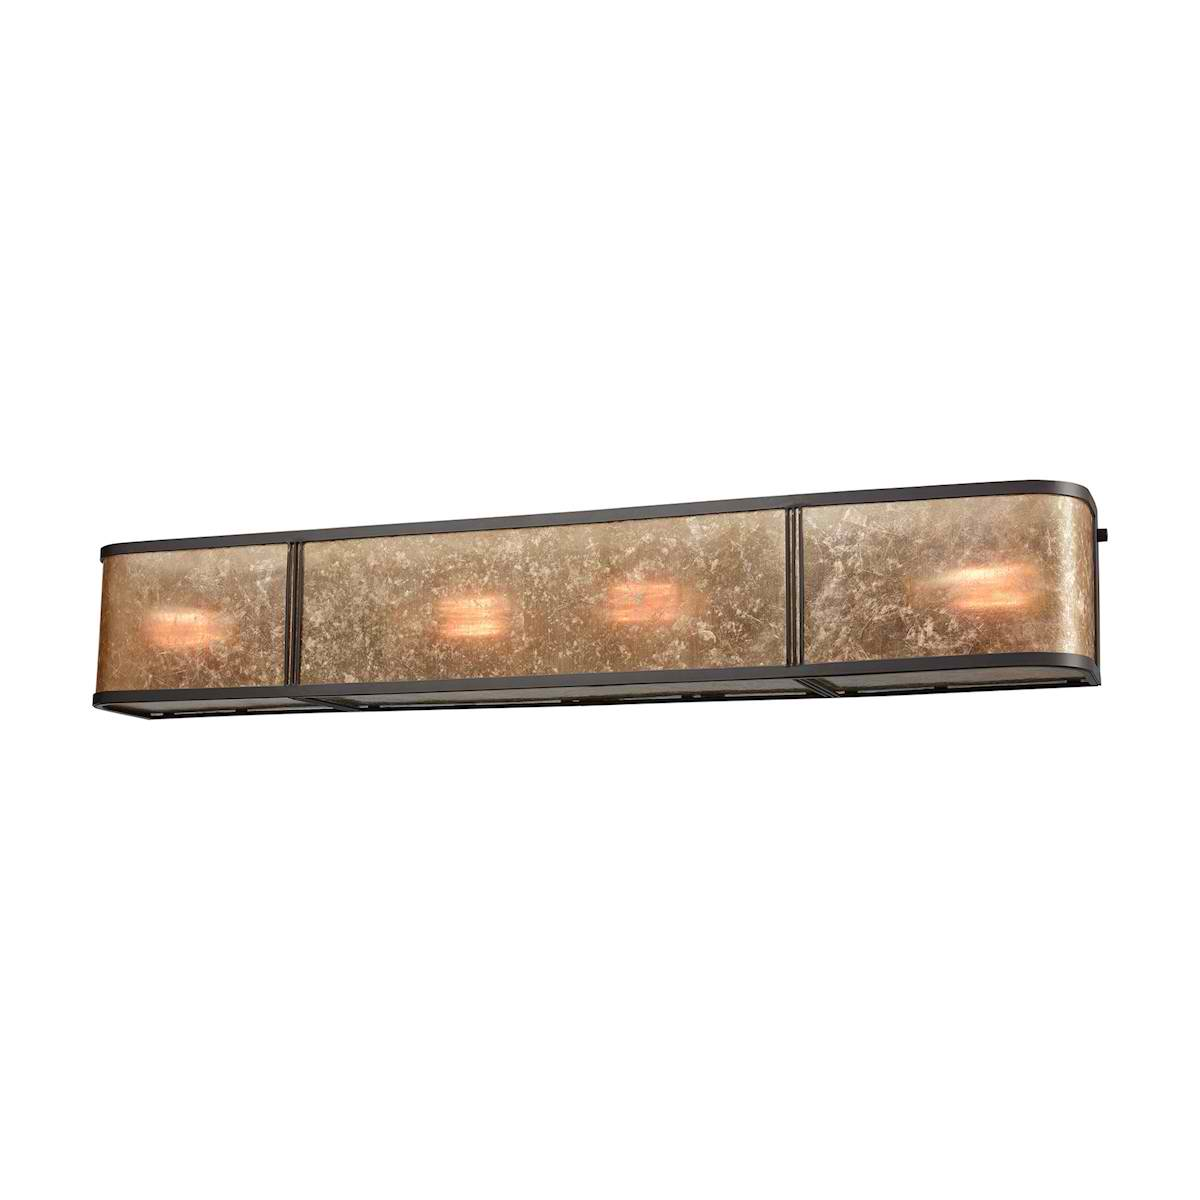 Barringer 4 Light Vanity in Oil Rubbed Bronze with Tan Mica